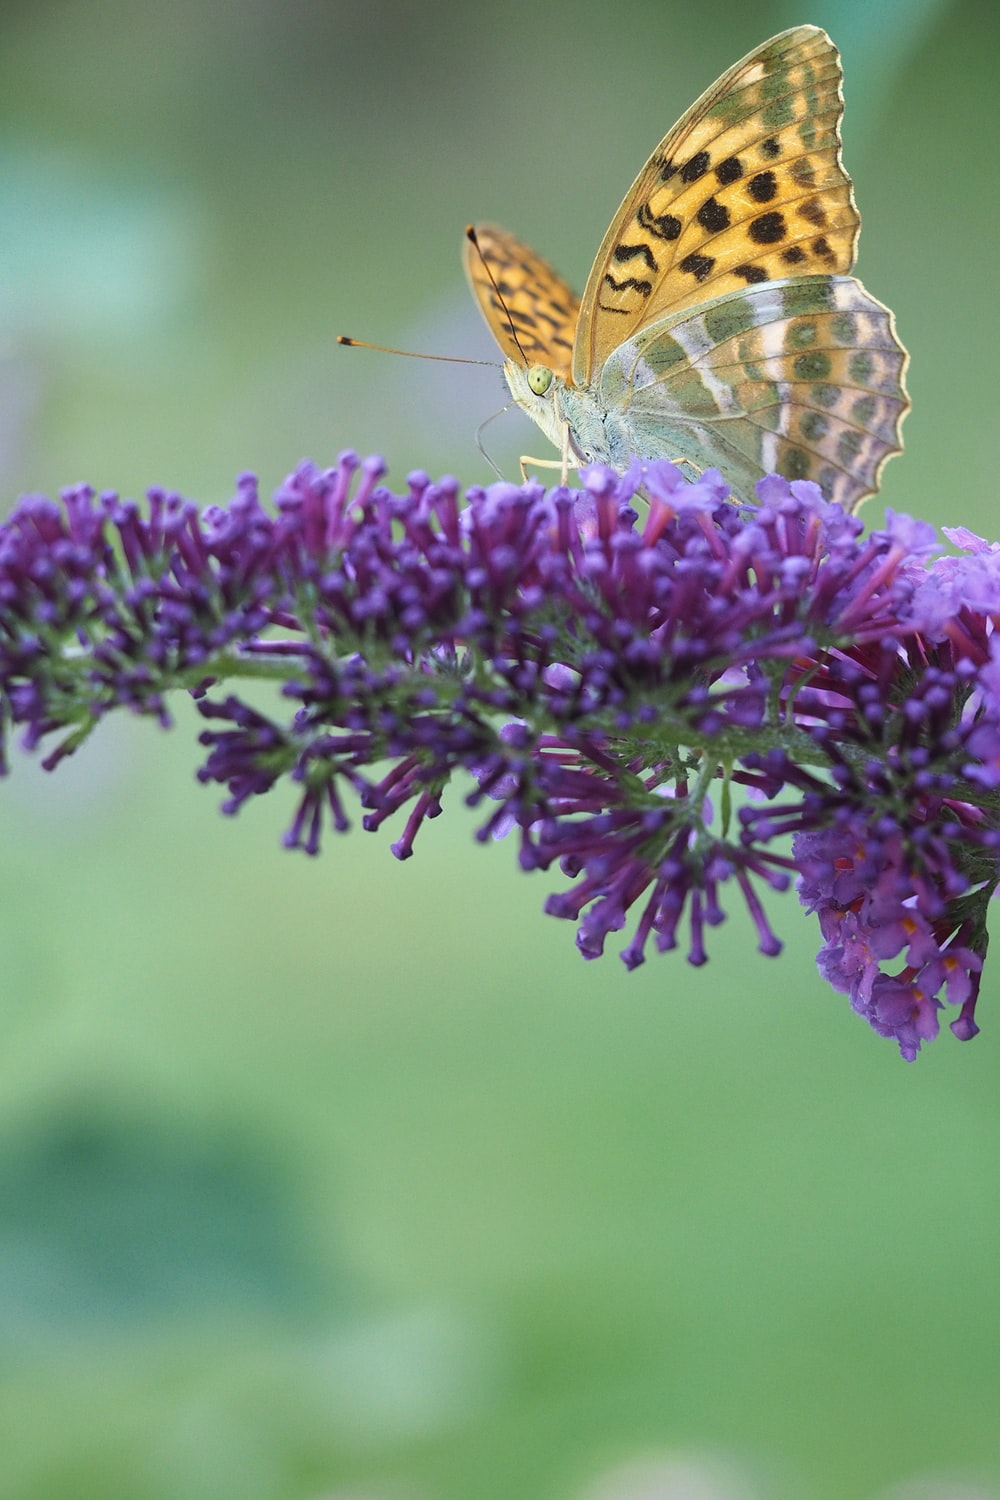 brown and black butterfly on purple flower